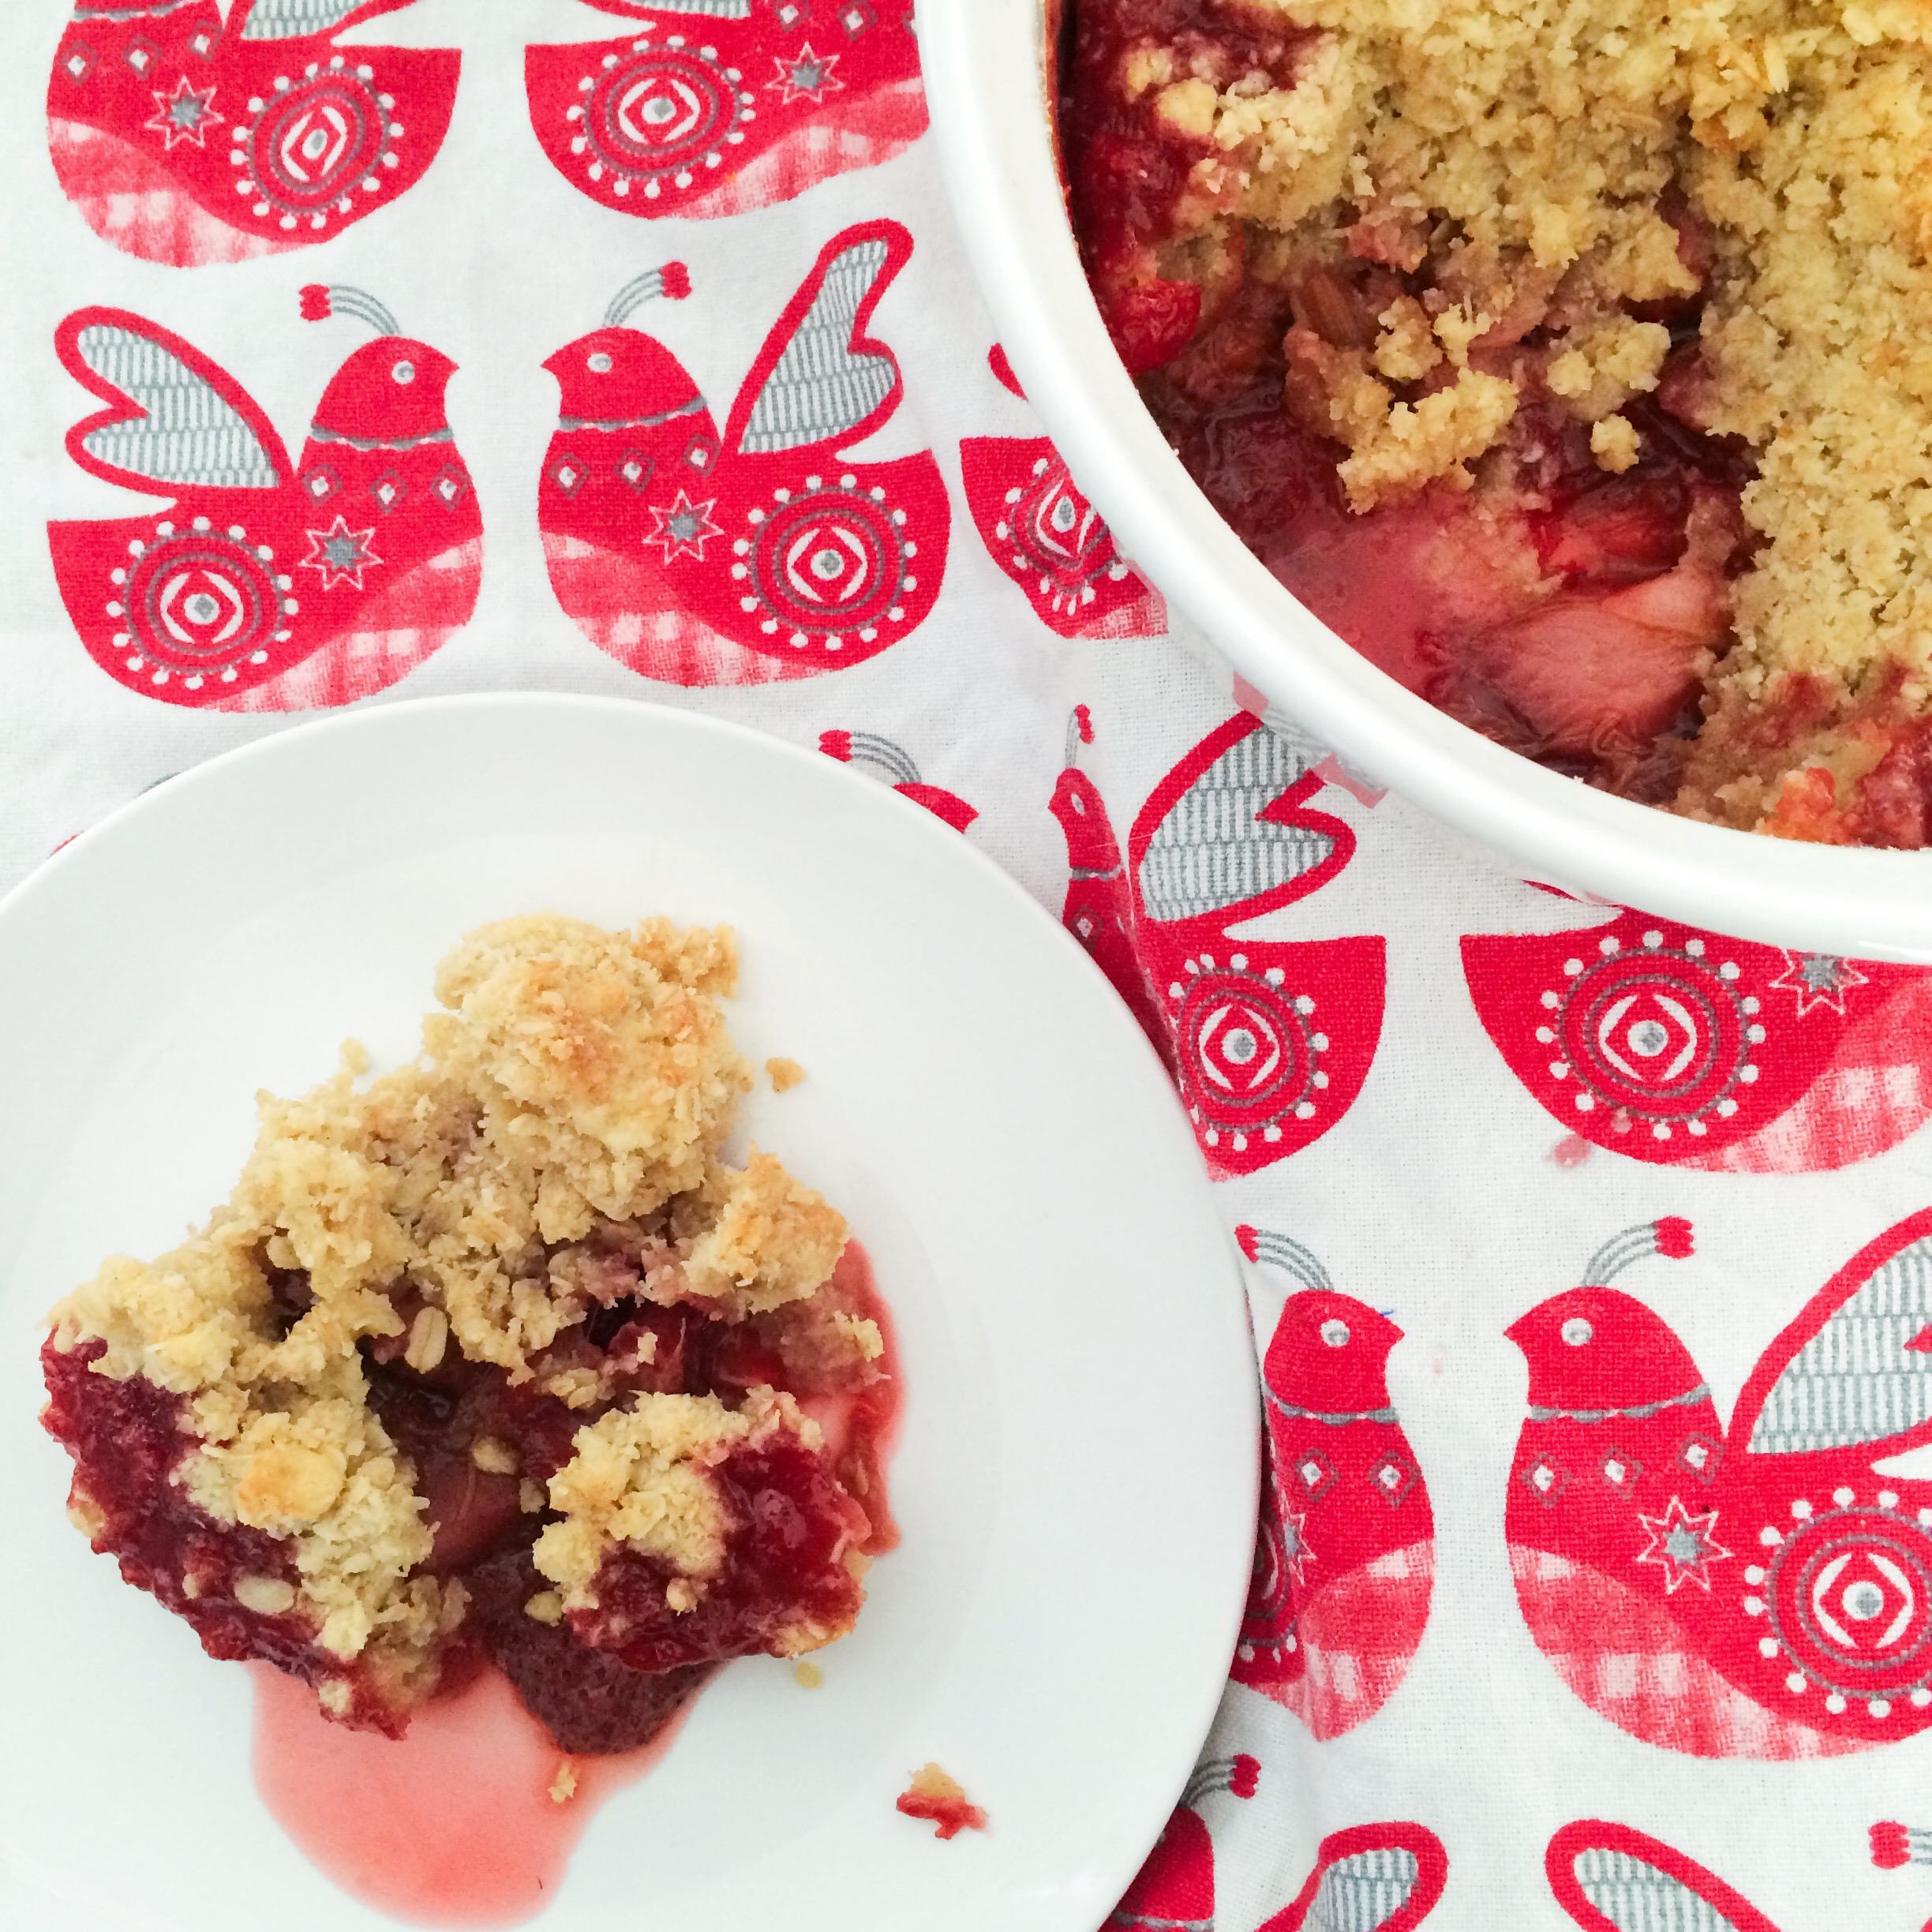 Strawberry RhubApple Crumble